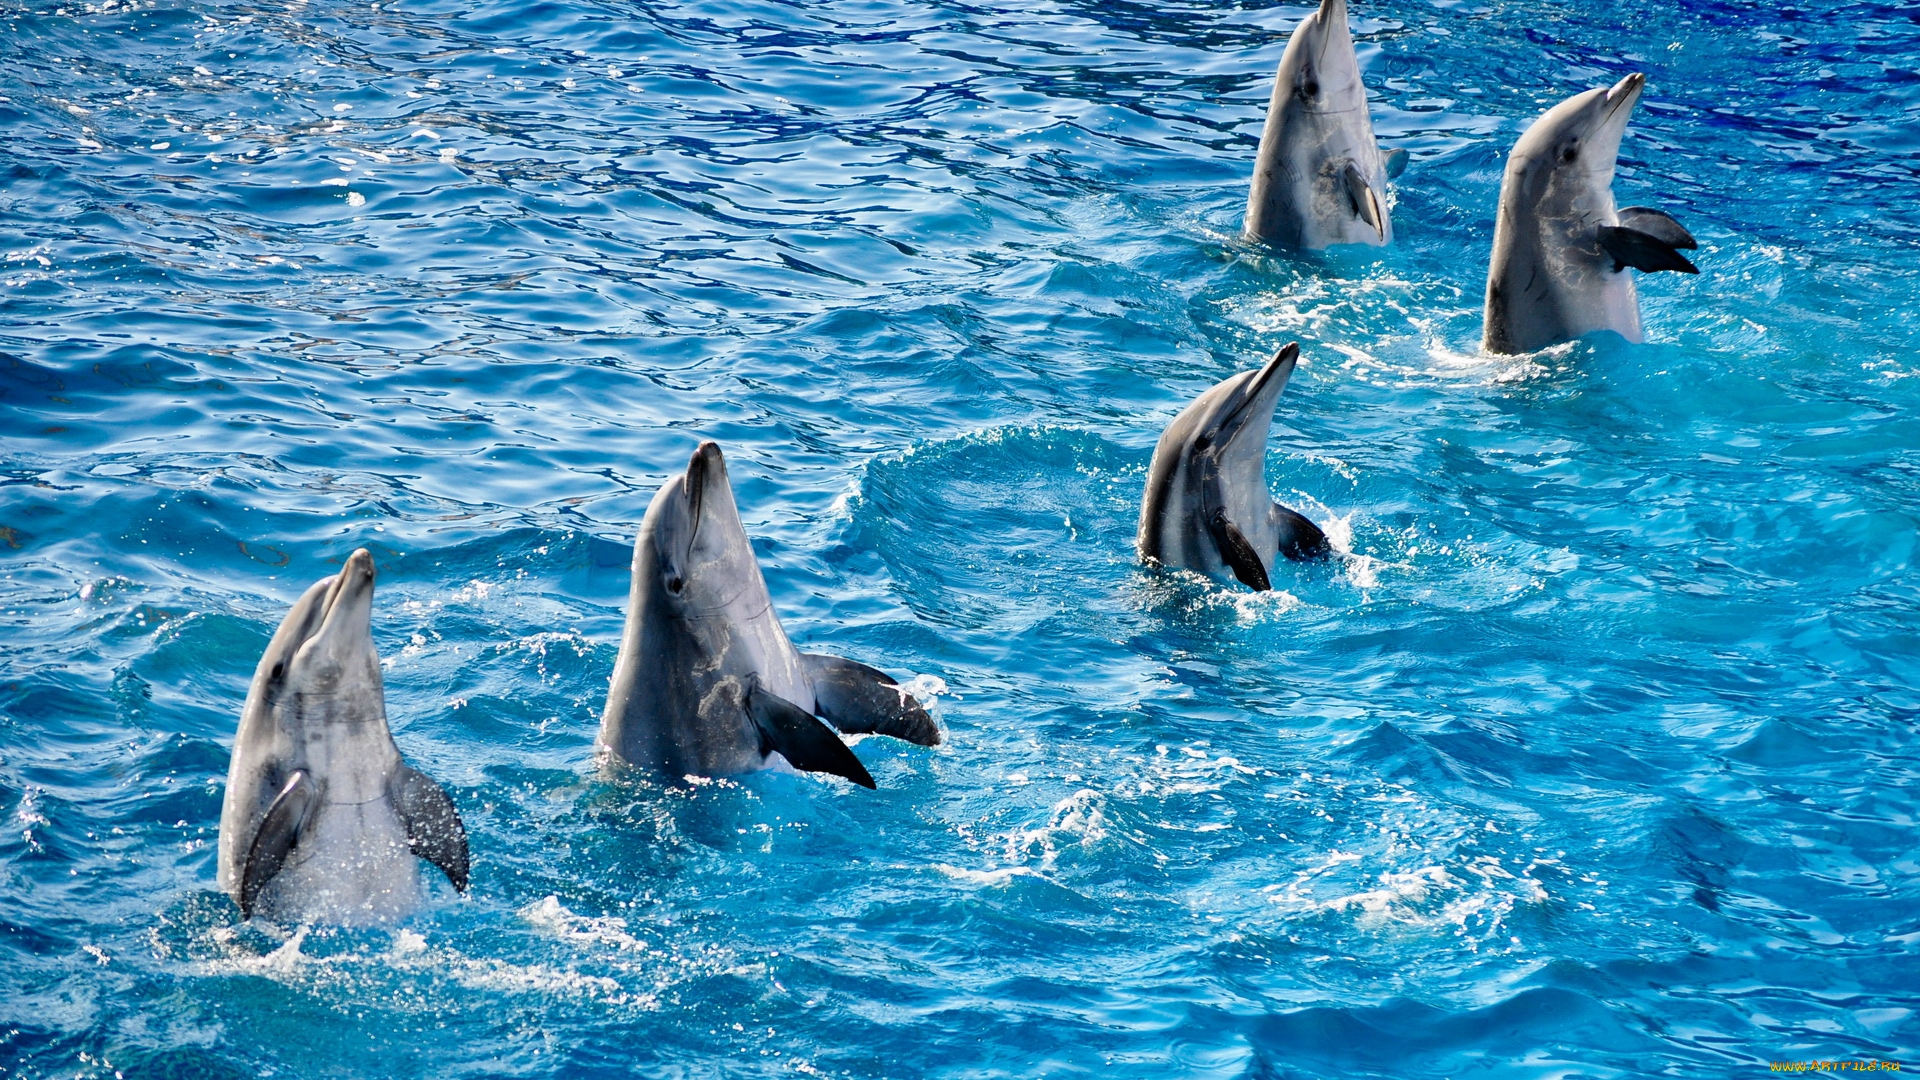 Dolphin Full Hd Wallpaper And Background Image 1920x1080